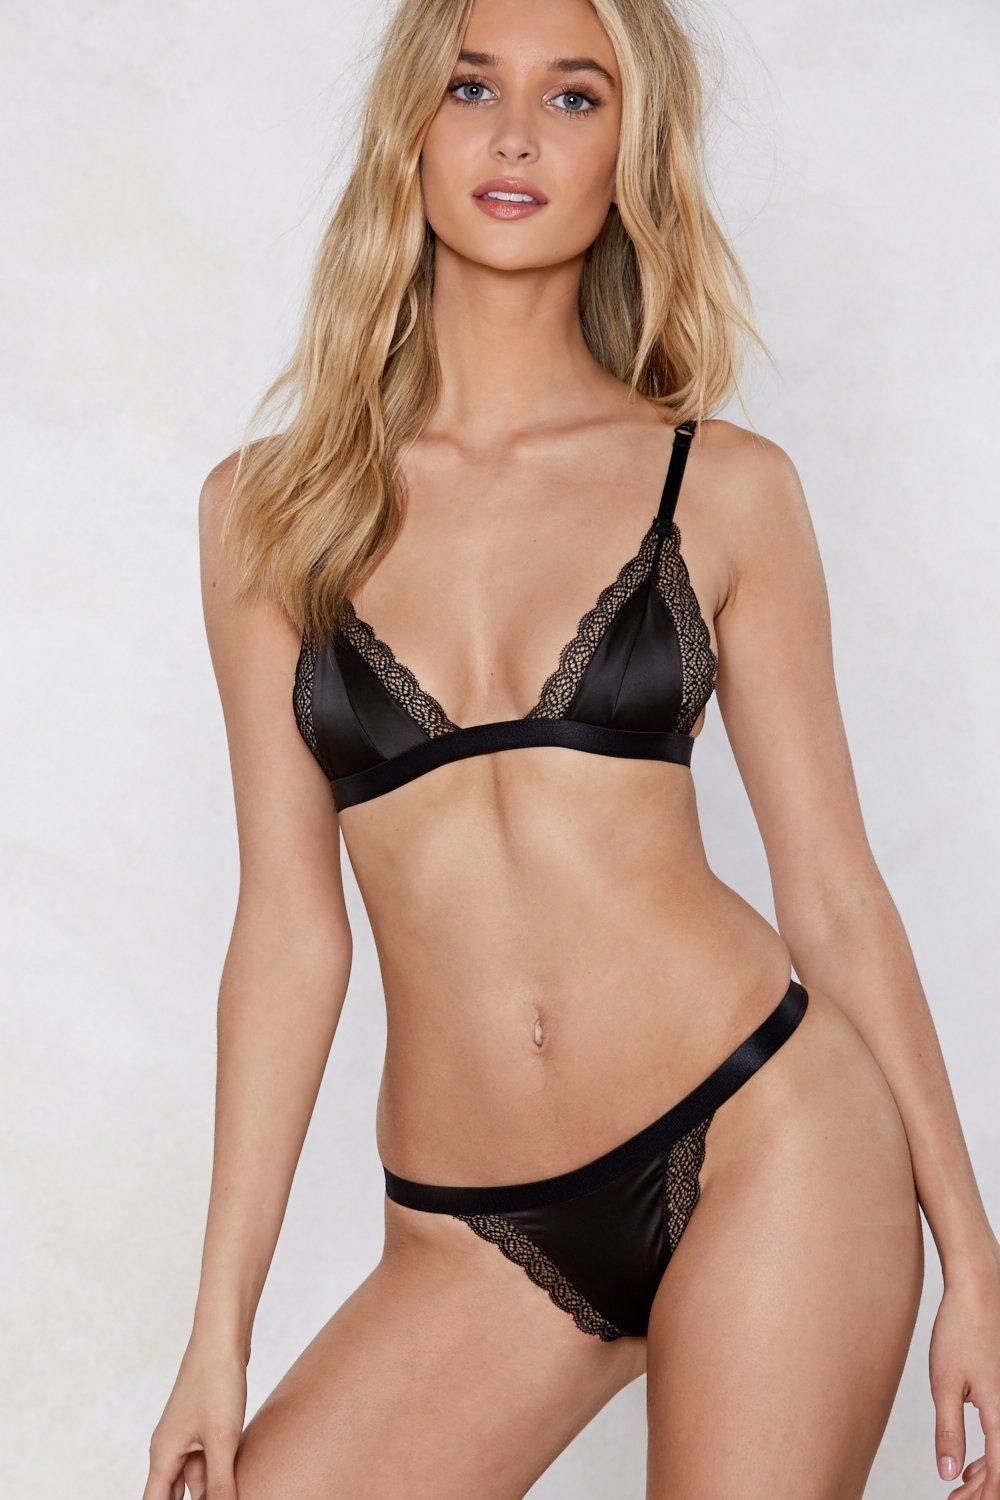 2dacf0aa9de0f The Best Places To Buy Affordable Lingerie Online